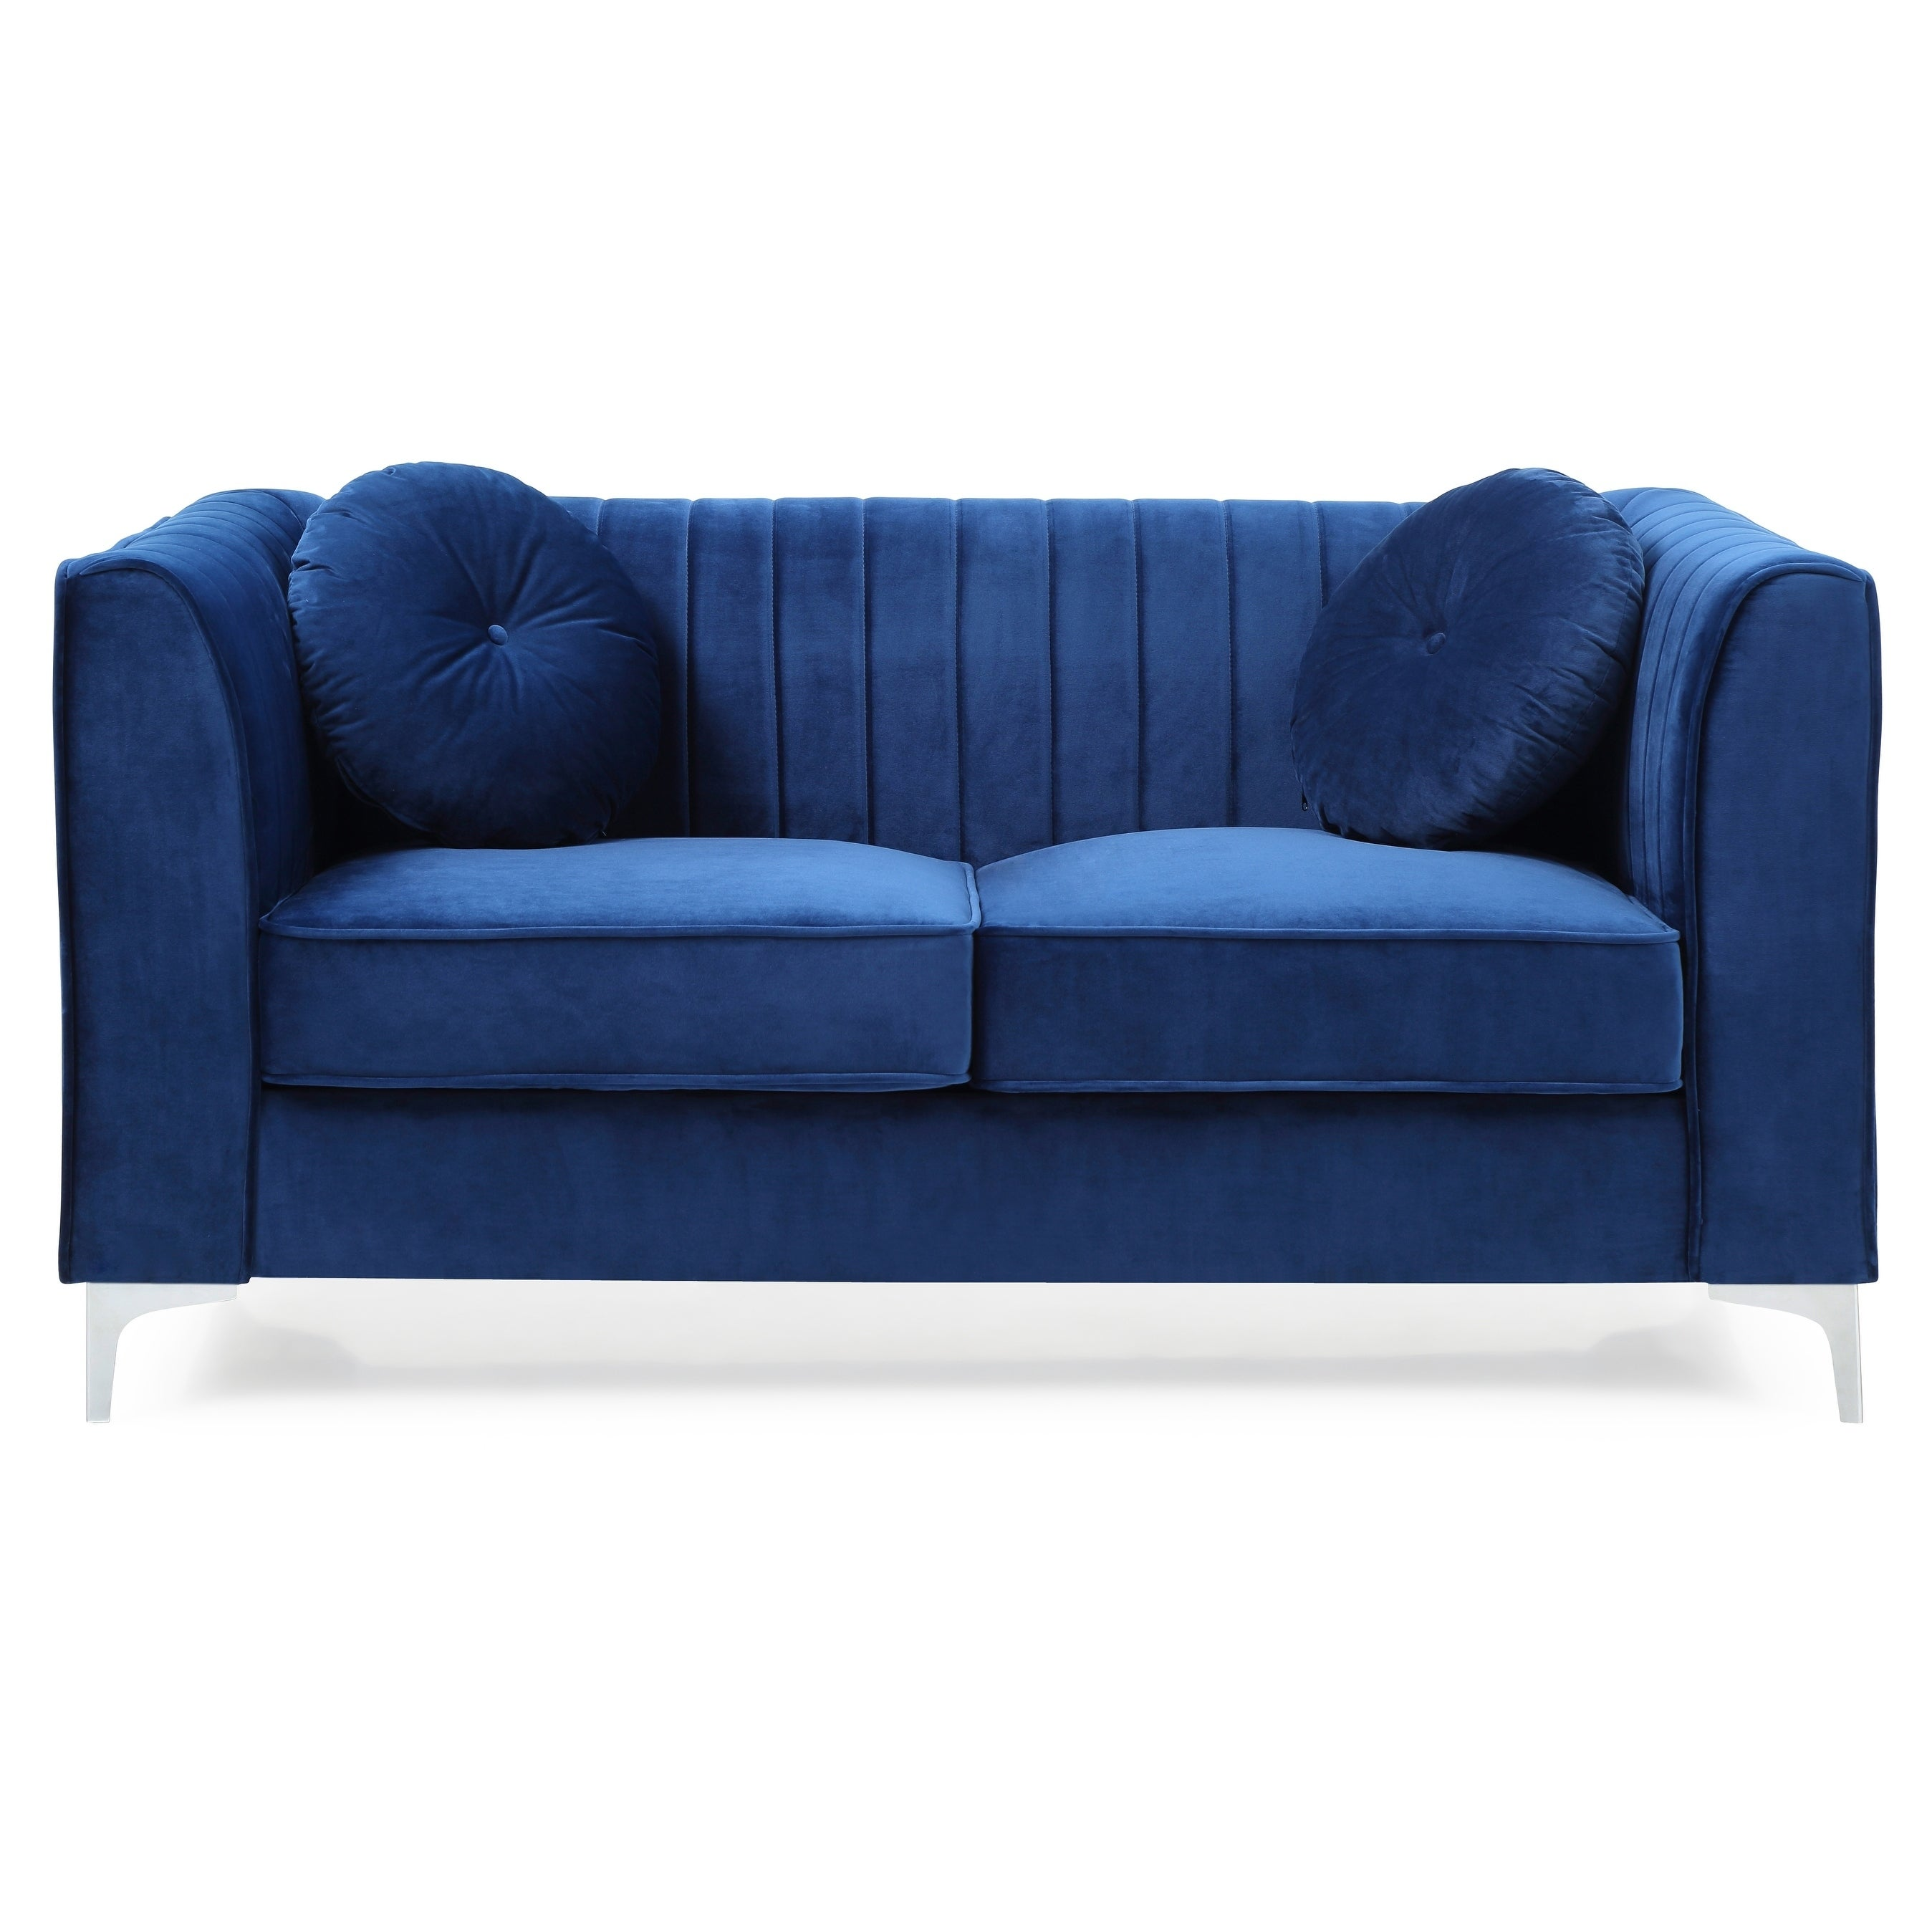 Shop Lyke Home Channel Navy Blue Tufted Loveseat On Sale Overstock 28014185